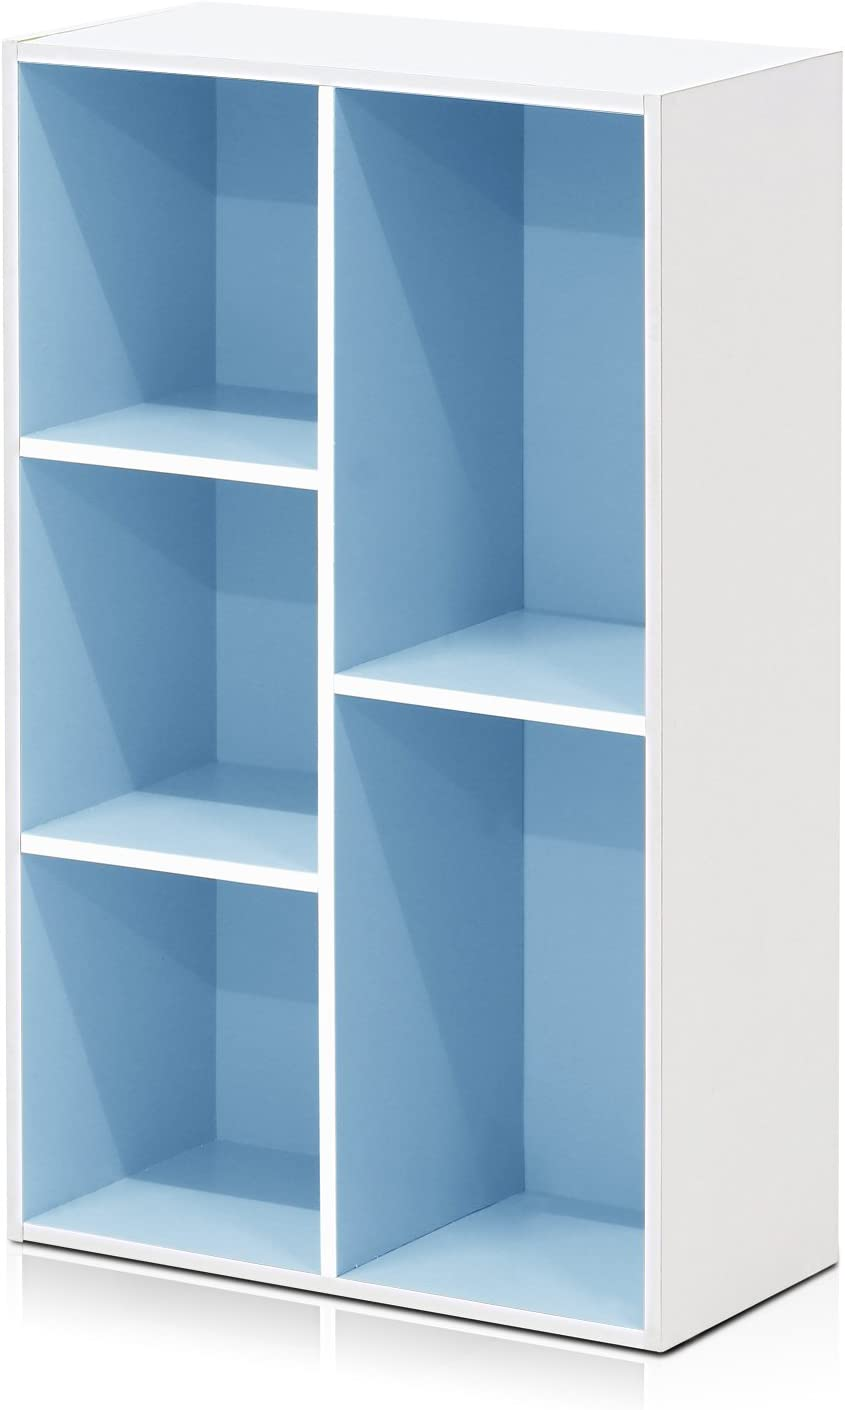 Furinno Bookcases Wood White Light Blue One Size Amazon Co Uk